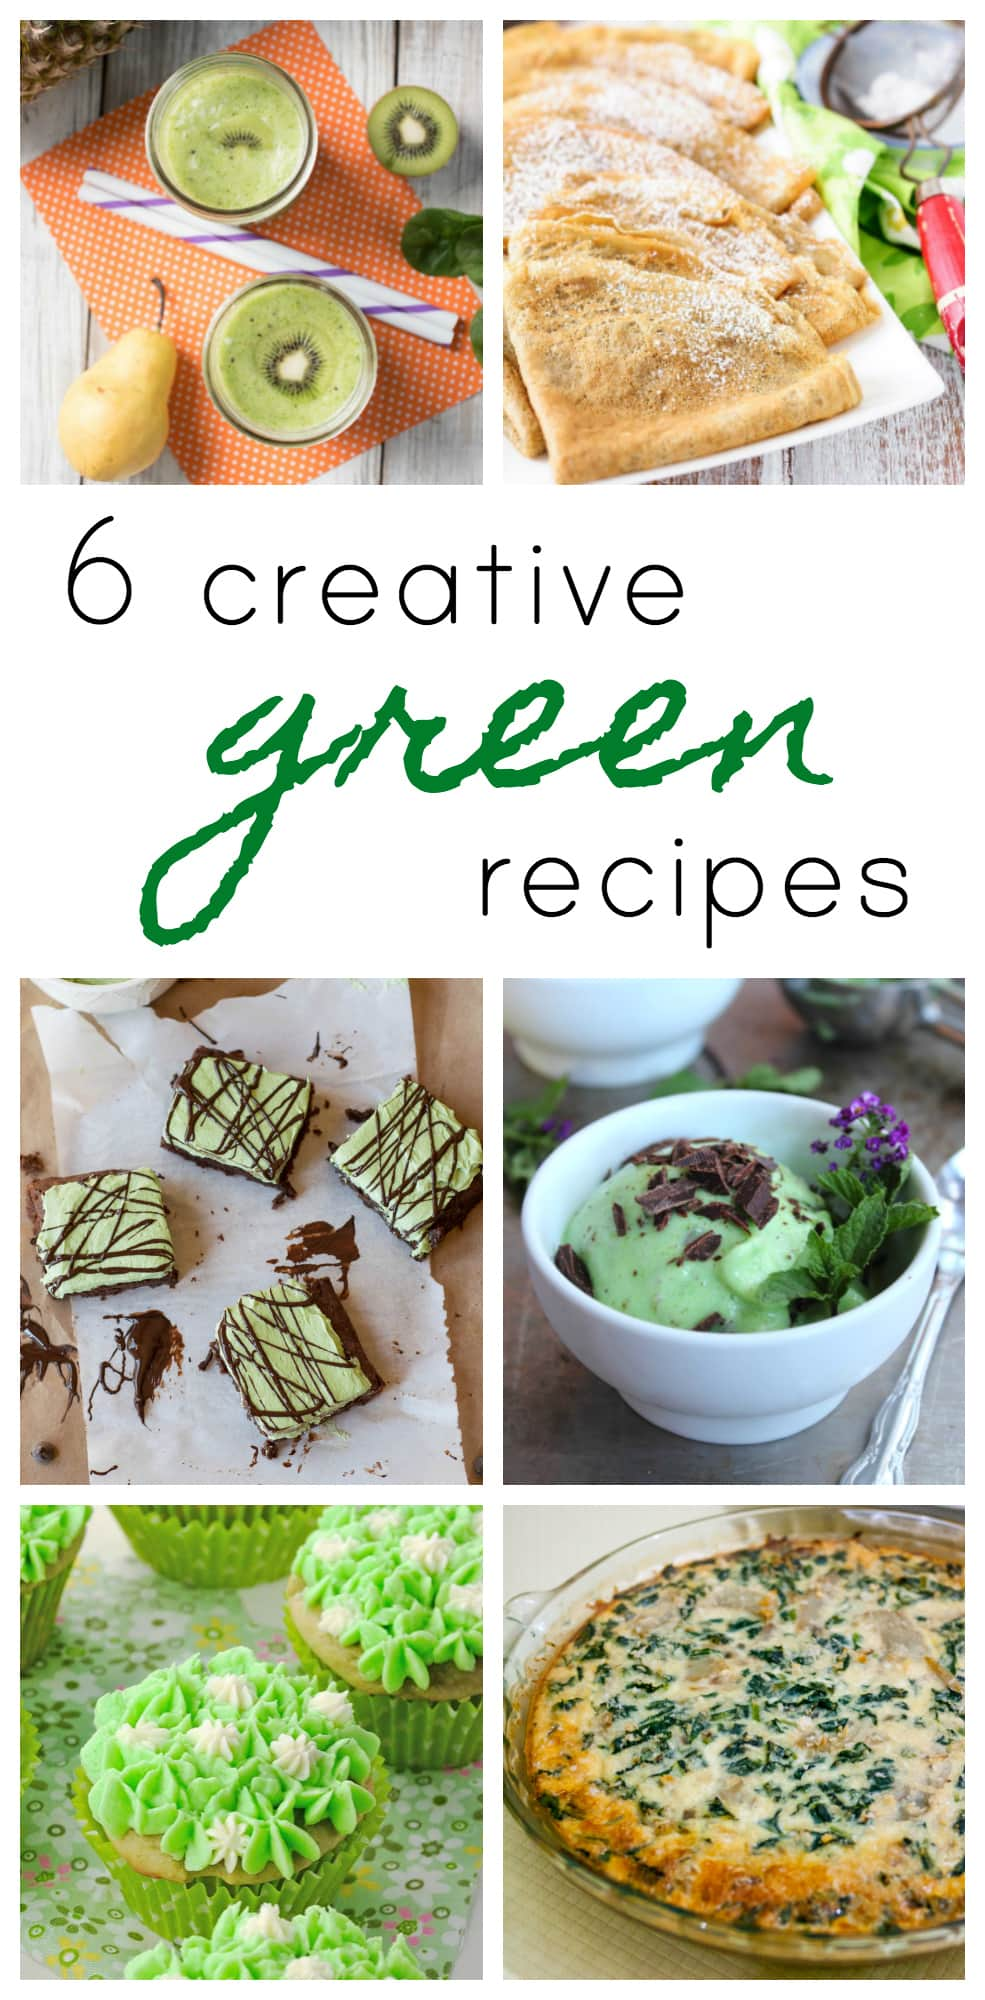 Looking for some festive recipe ideas for March and St. Patrick's Day? Here are 6 creative green recipes to try! - @TheFitCookie